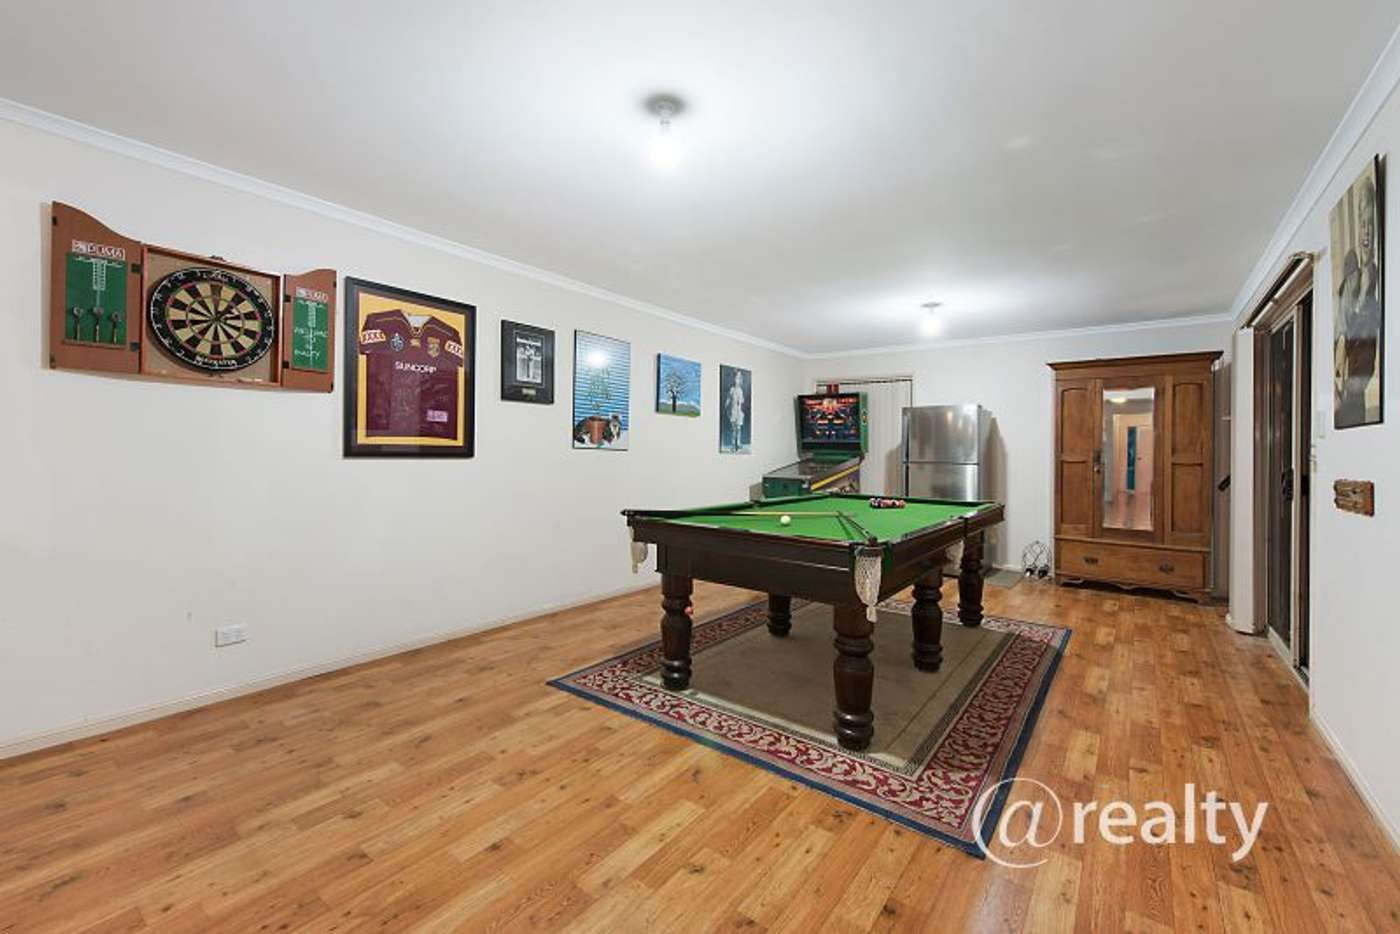 Seventh view of Homely house listing, 11 Condamine Court, Joyner QLD 4500